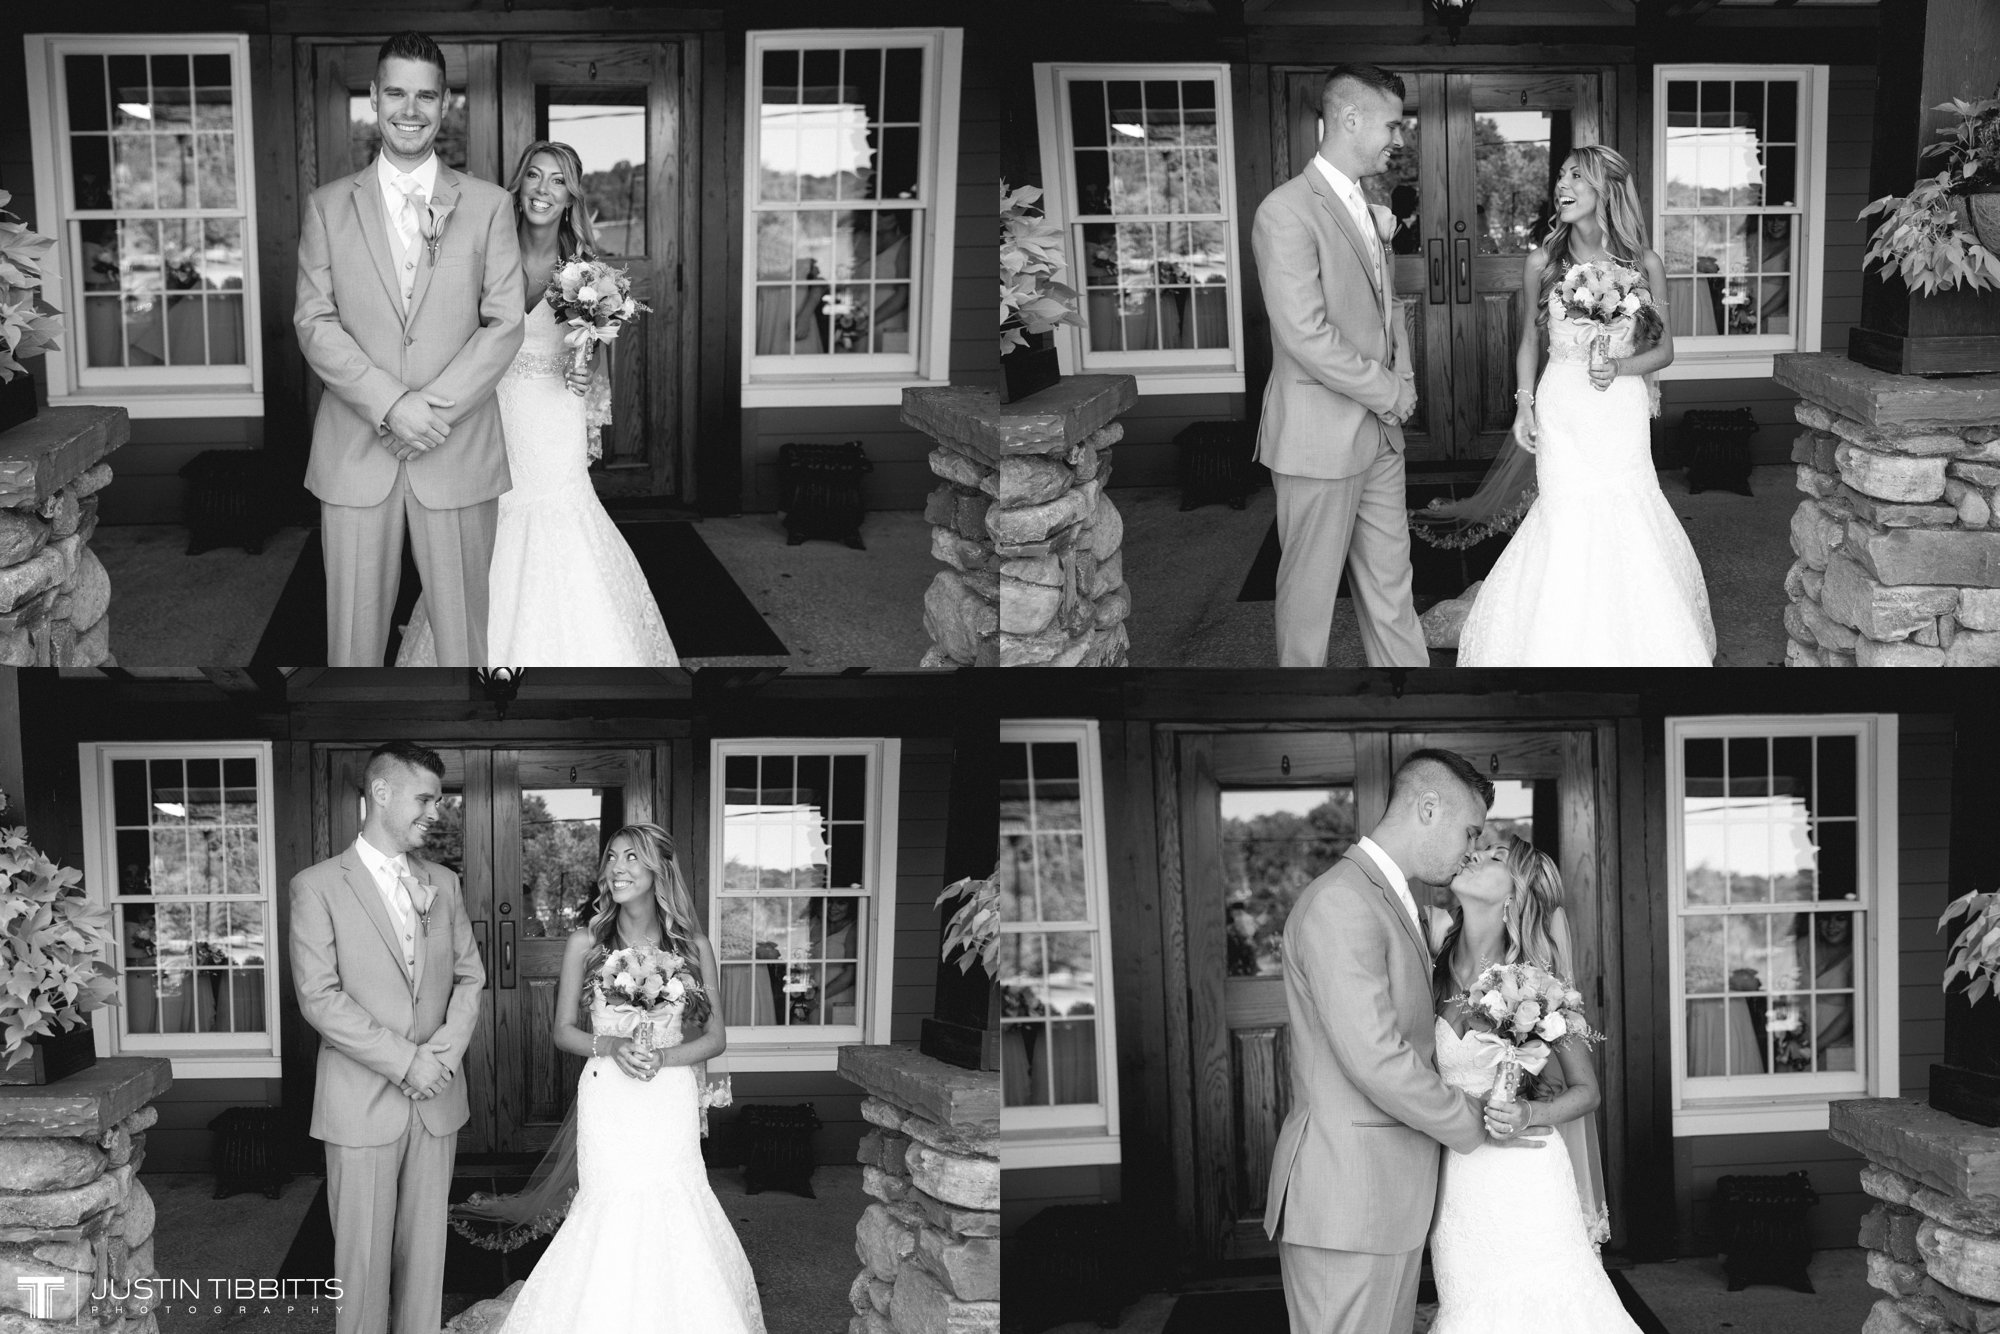 Justin Tibbitts Photography Mr and Mrs Cullum Crooked Lake House, West Sand Lake, NY Wedding-213